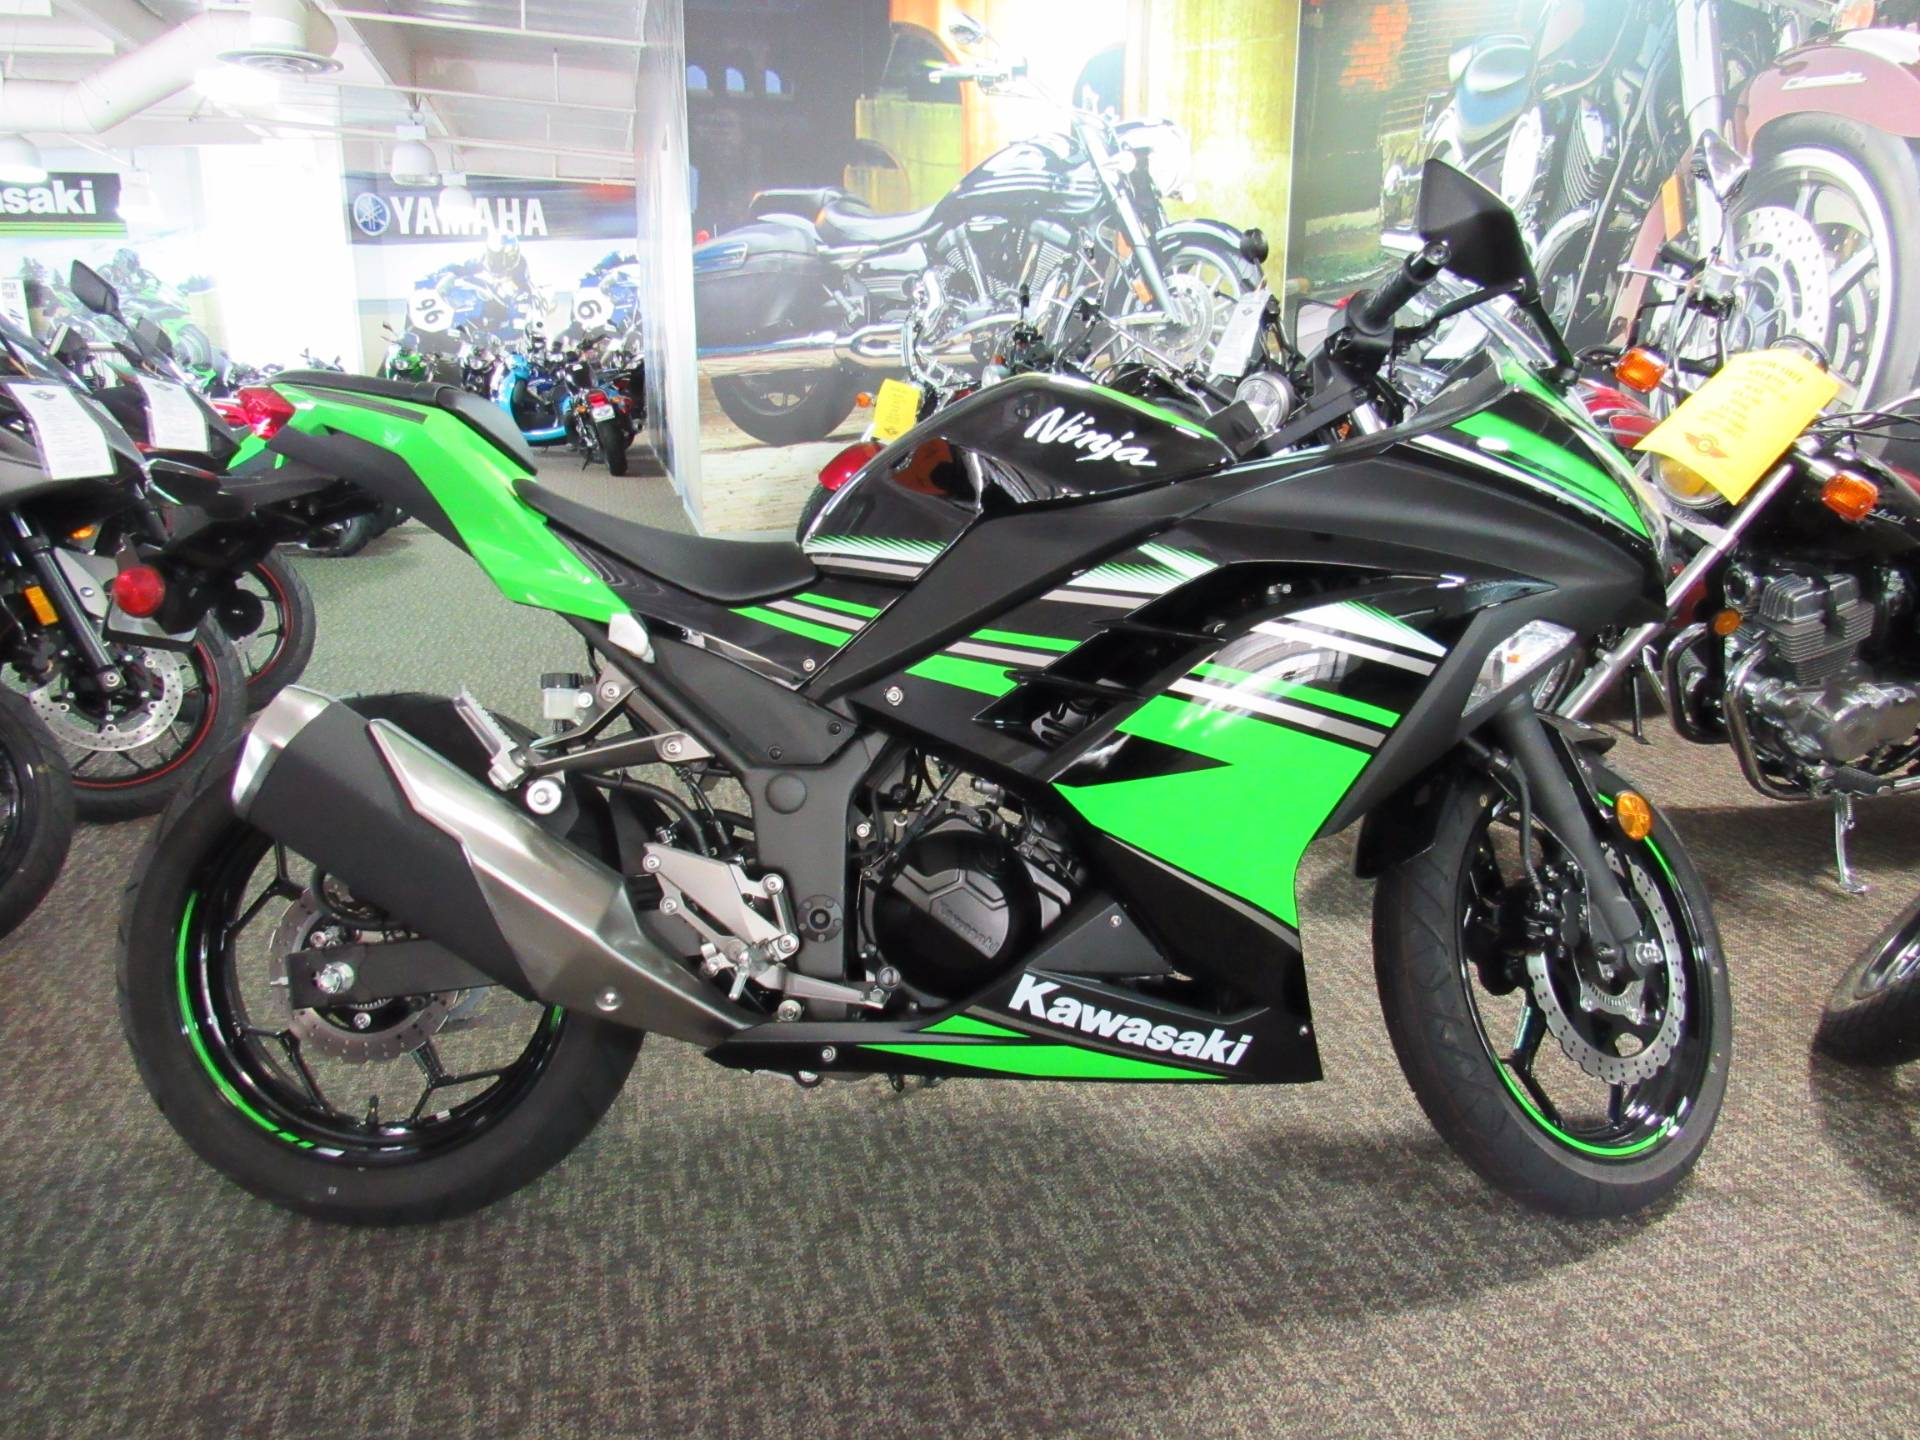 2016 Kawasaki Ninja 300 ABS KRT Edition in Irvine, California